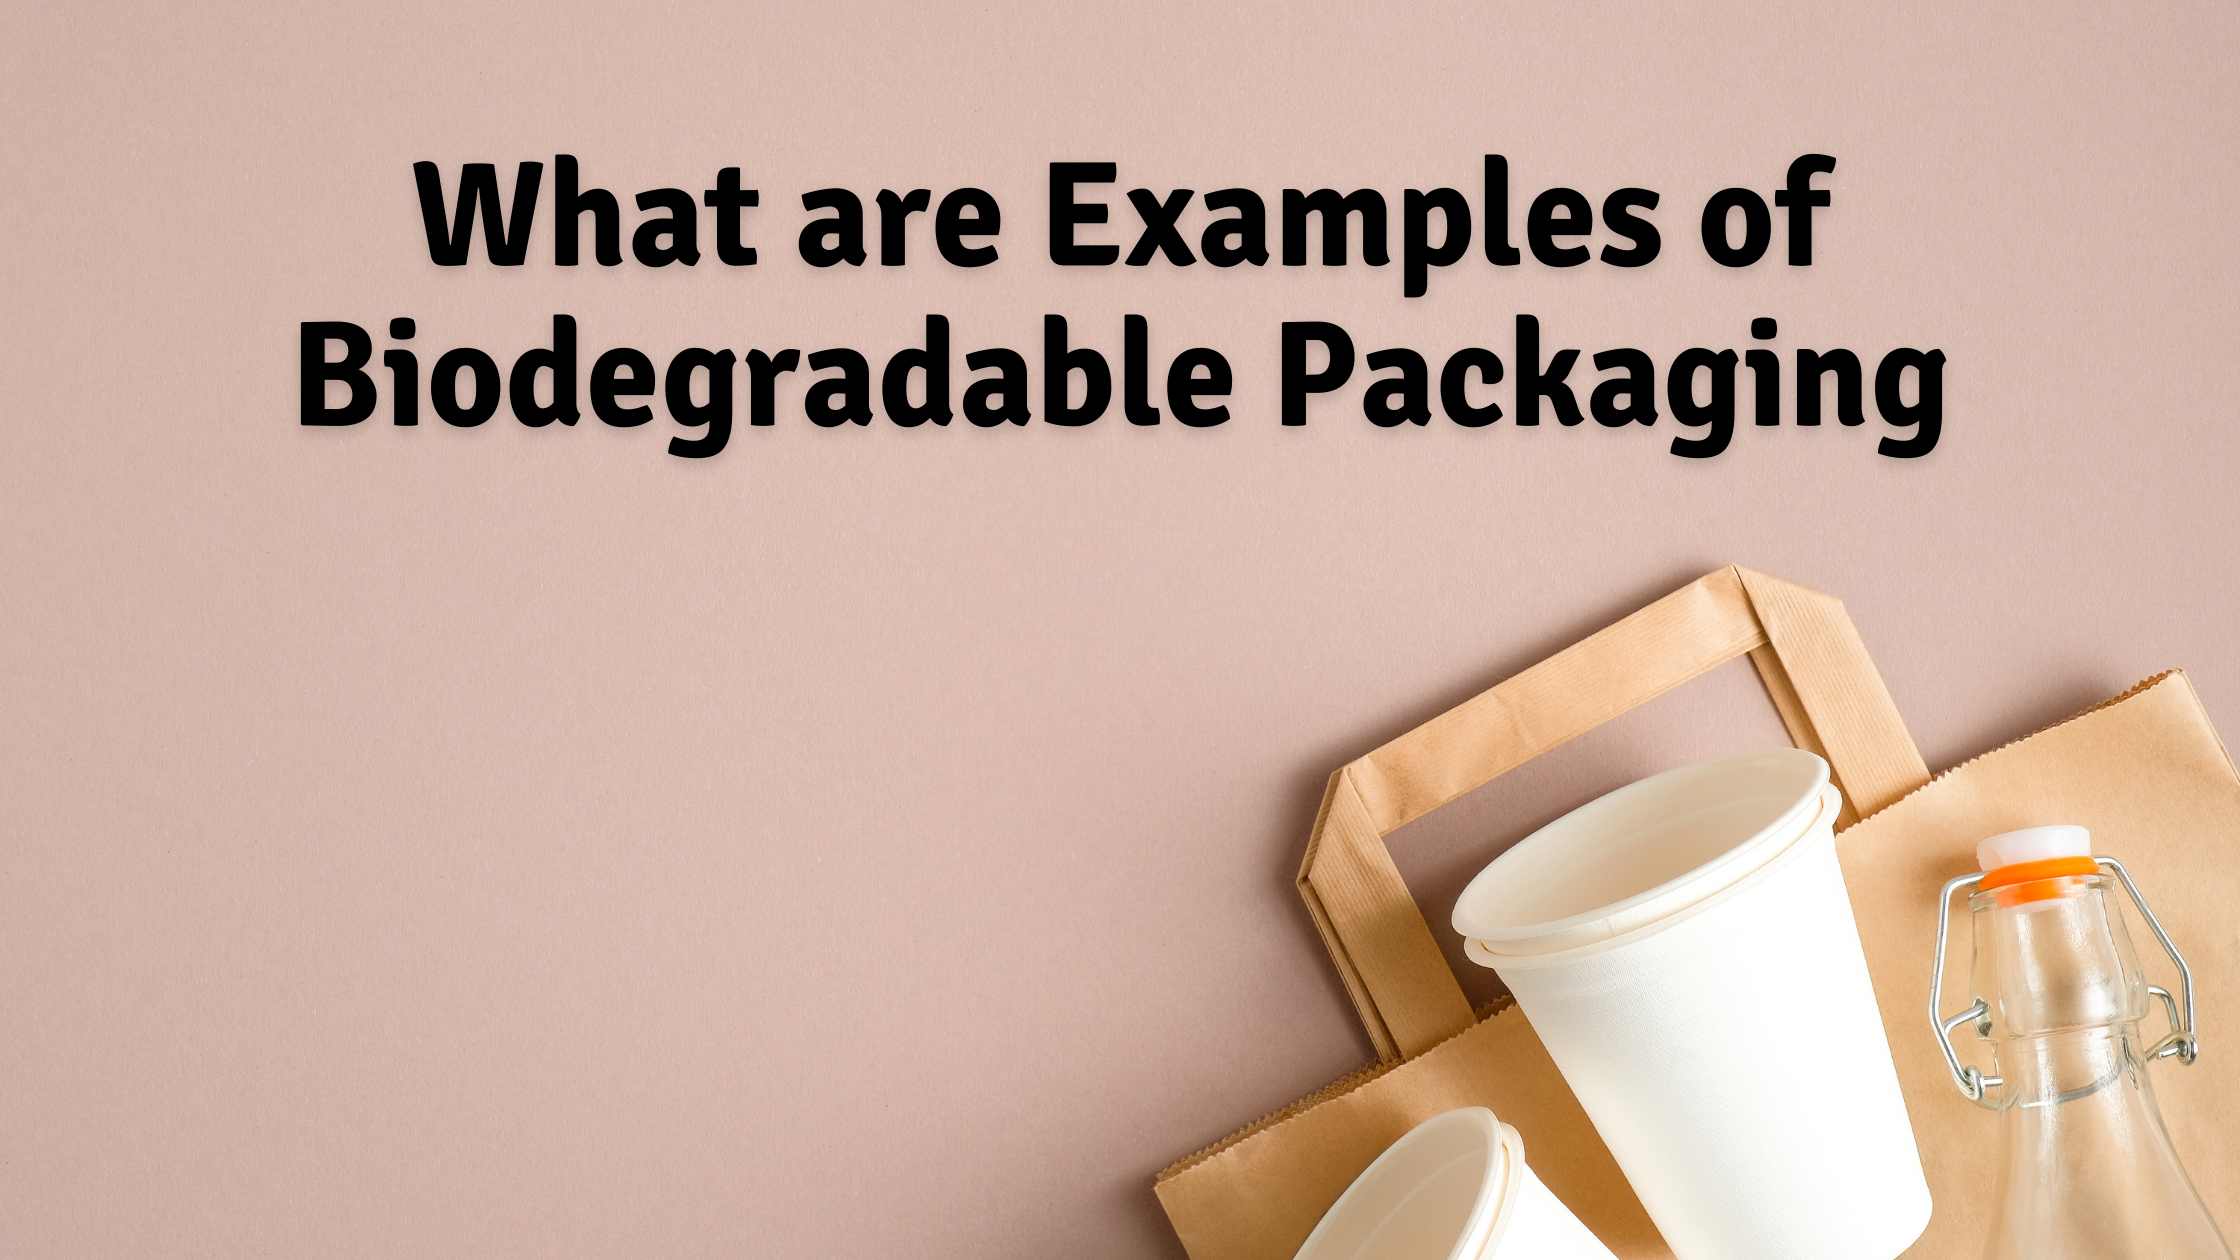 What You Need to Know About Biodegradable Packaging: What are Examples of Biodegradable Packaging?